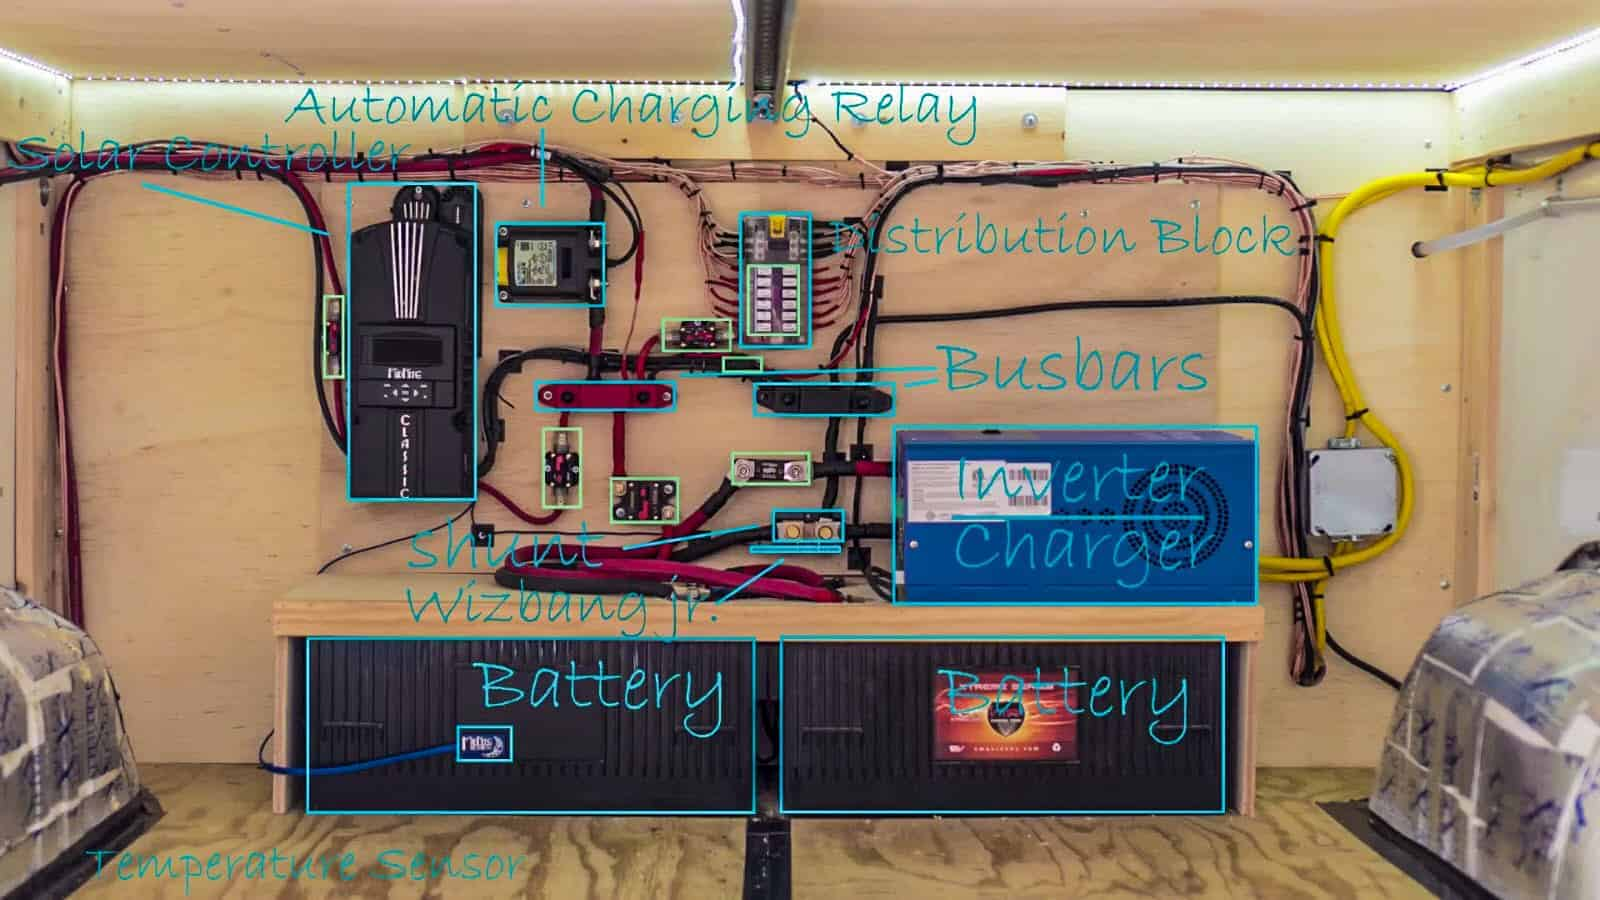 solar panel wiring diagram for caravan 12 volts battery charger circuit a complete guide to installing on campervan